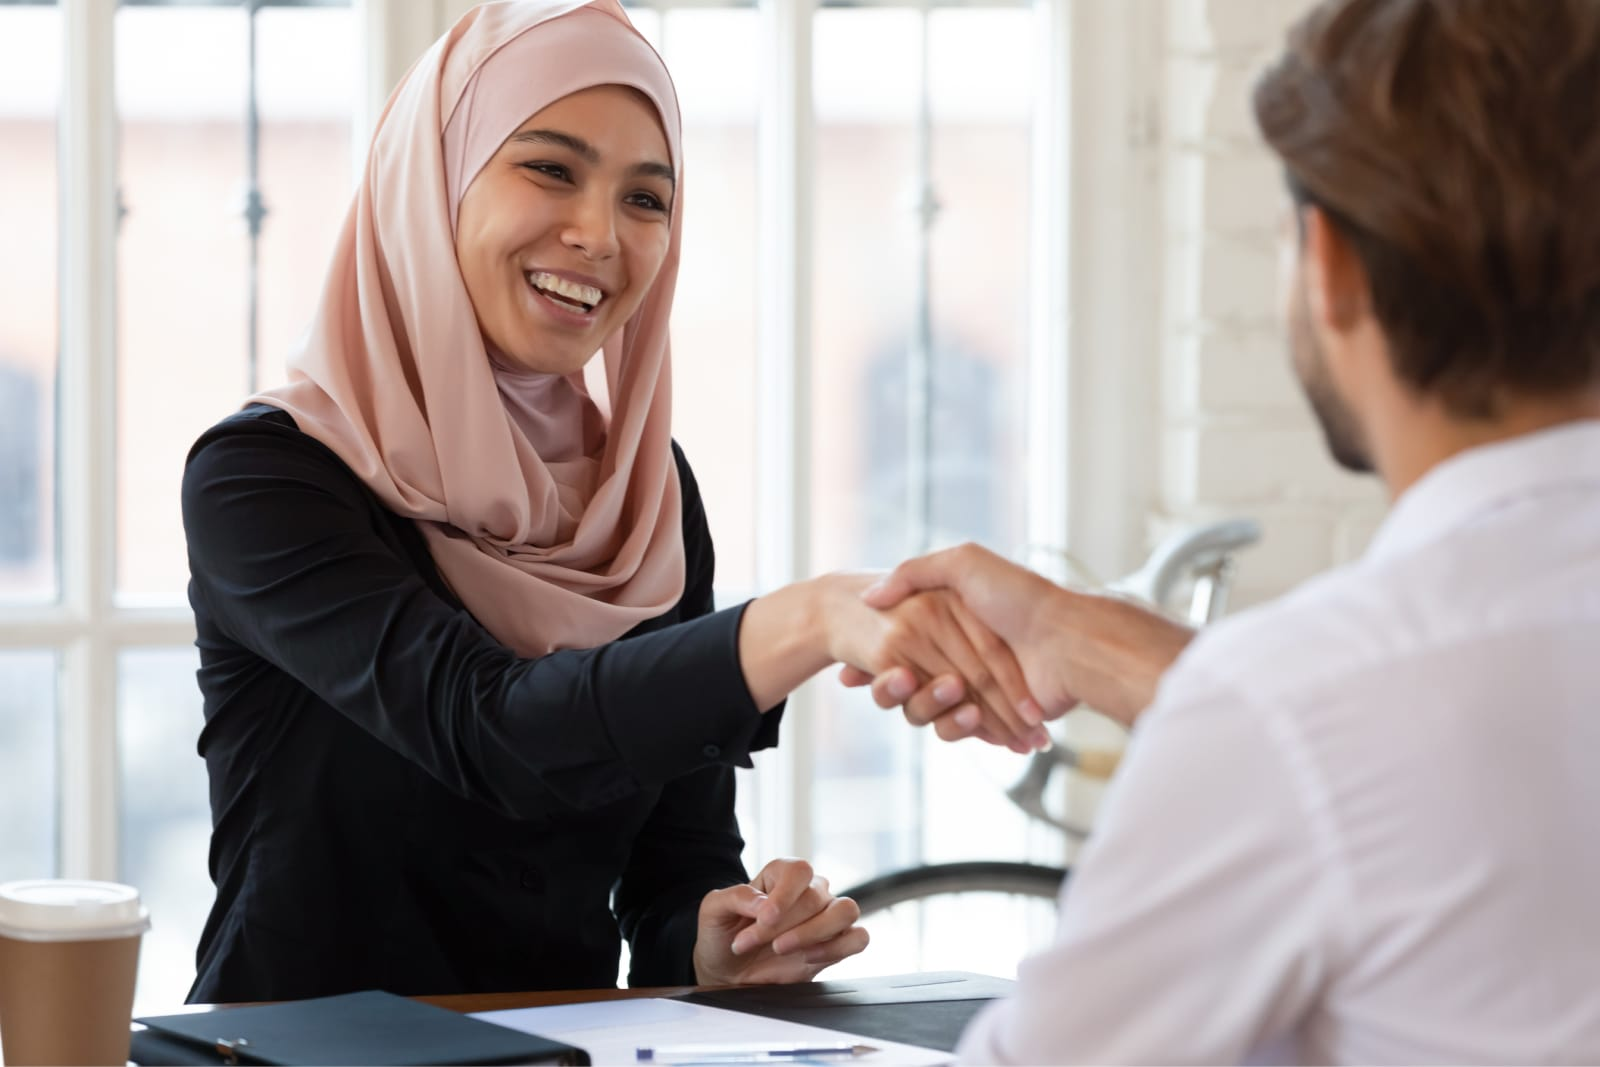 A woman and man shaking hands during a meeting